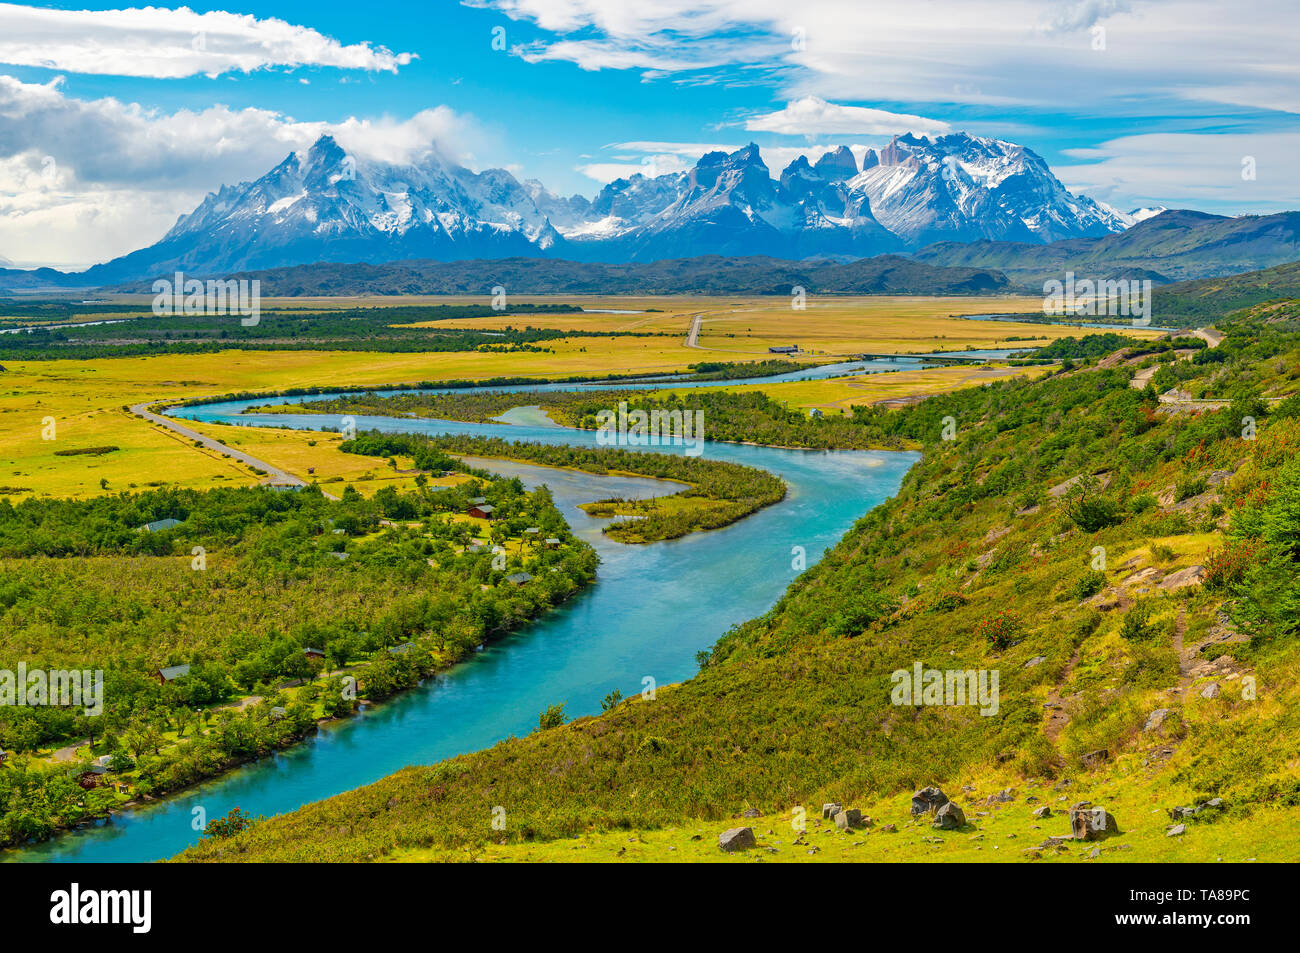 Majestic landscape of the Torres del Paine national park with the Cuernos del Paine peaks and the Serrano river near Puerto Natales, Patagonia, Chile. - Stock Image